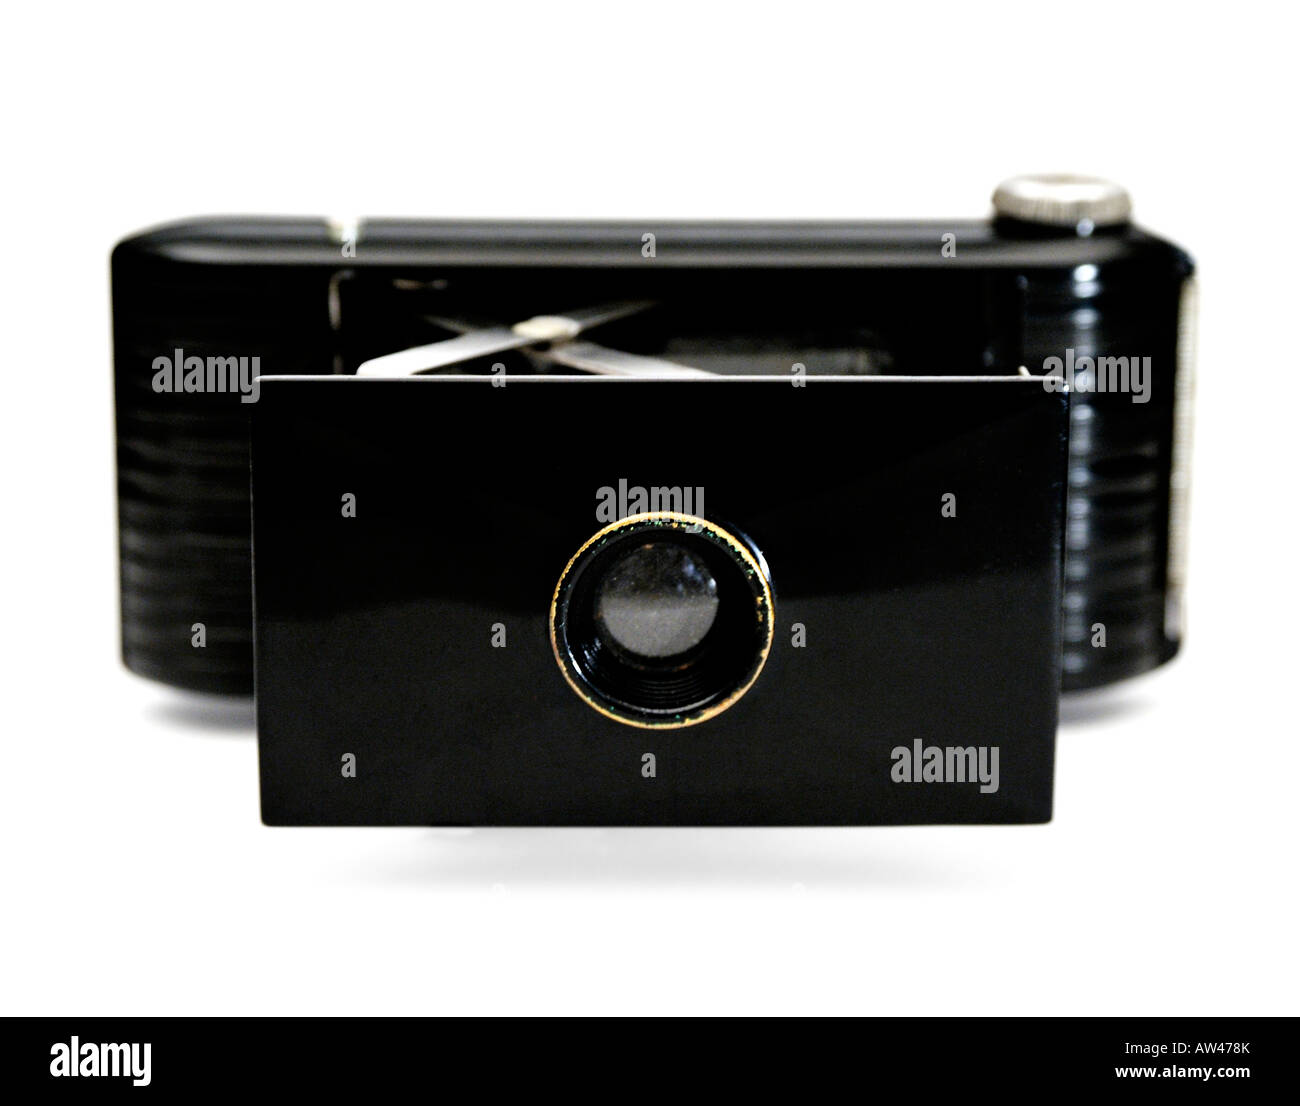 Bakelite camera 1930s - Stock Image